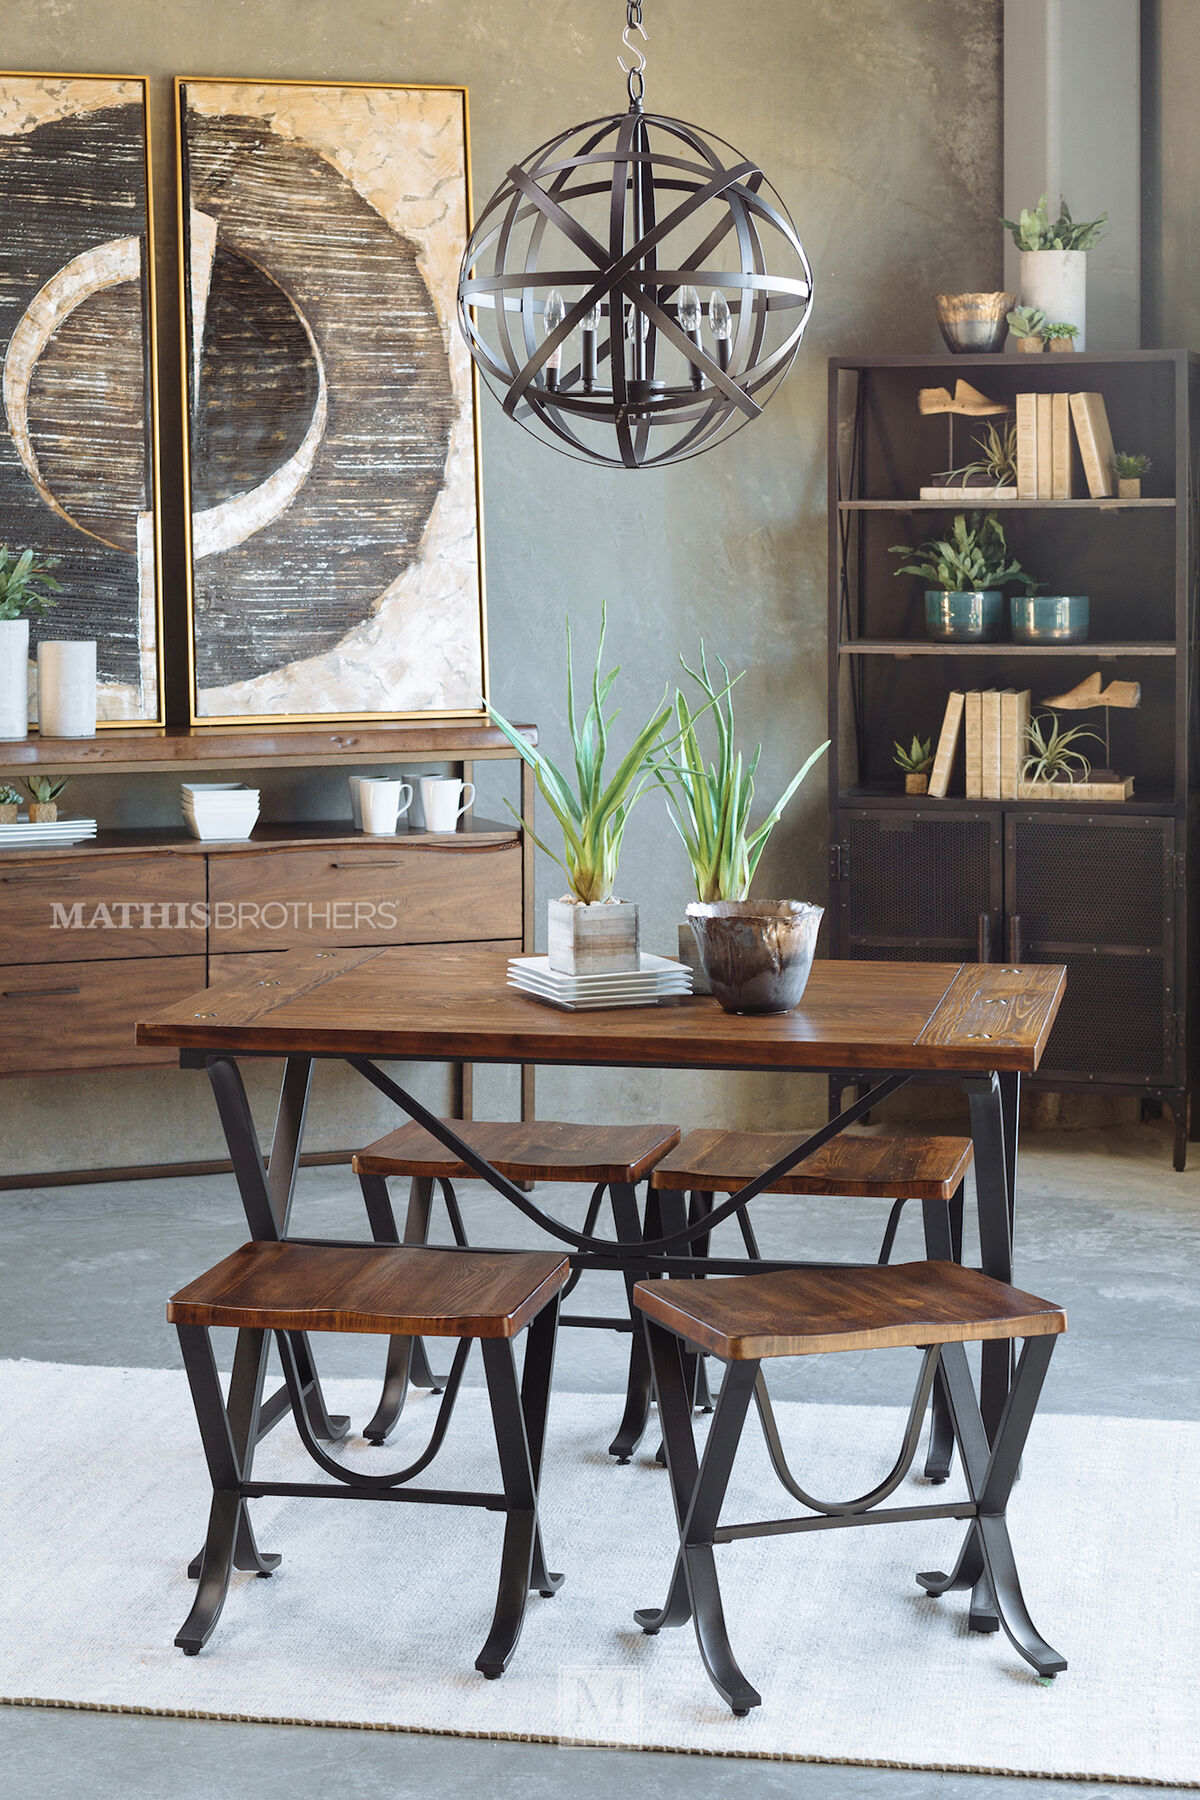 5 Piece Dining Set By Ashley Mathis Brothers